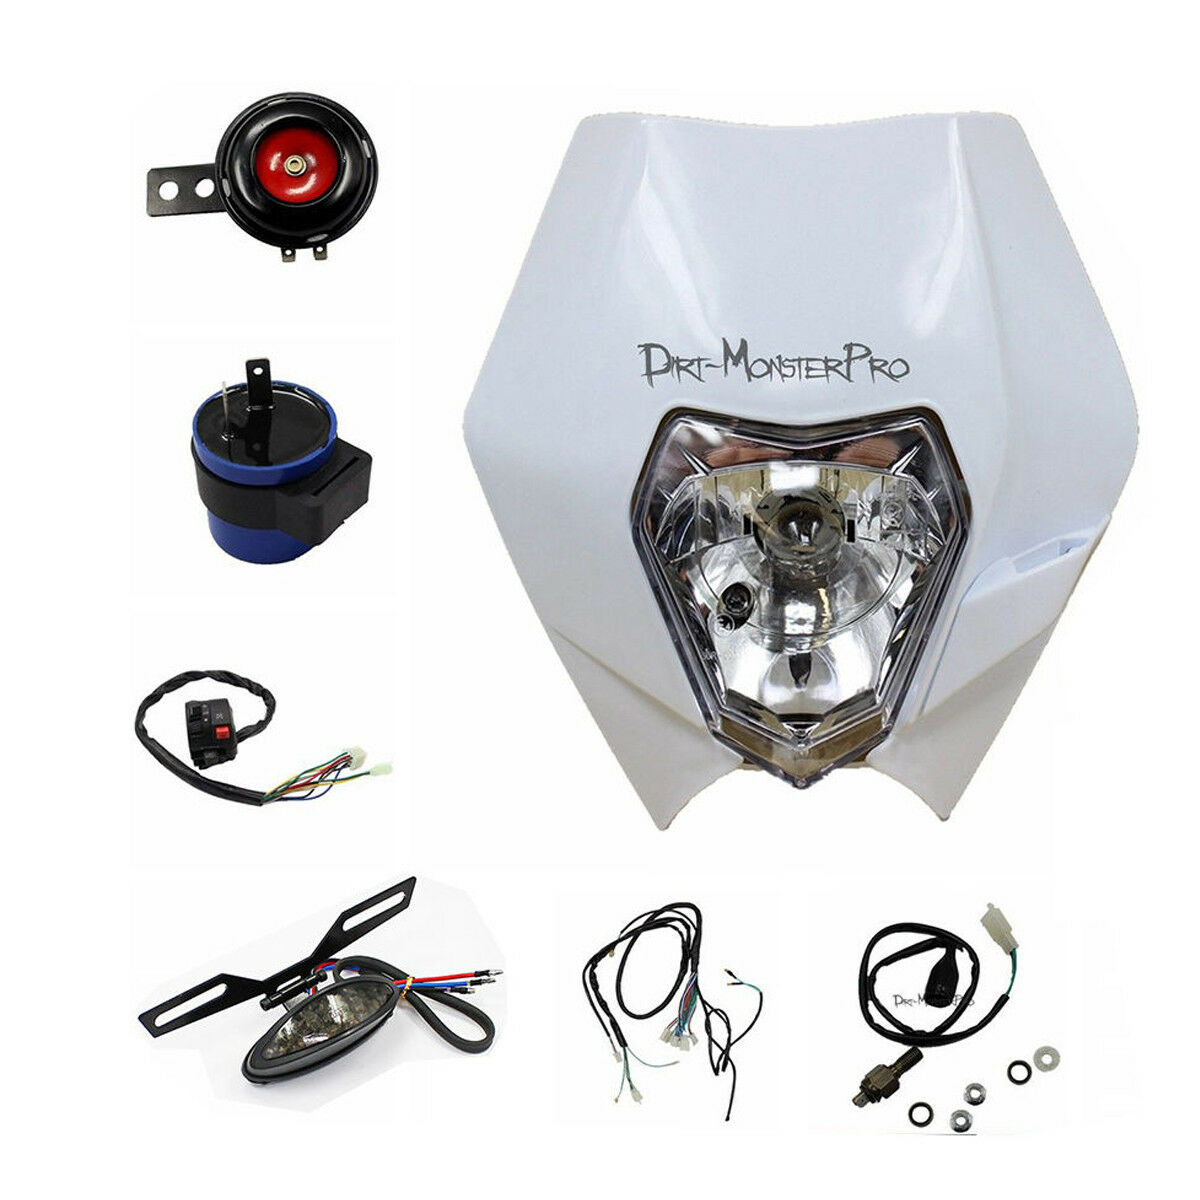 White Rec Reg Head Tail Light Kit For Yamaha Yz450 Wr450 Wr250 Dirt Wr250f Wiring Diagram Bike Pit